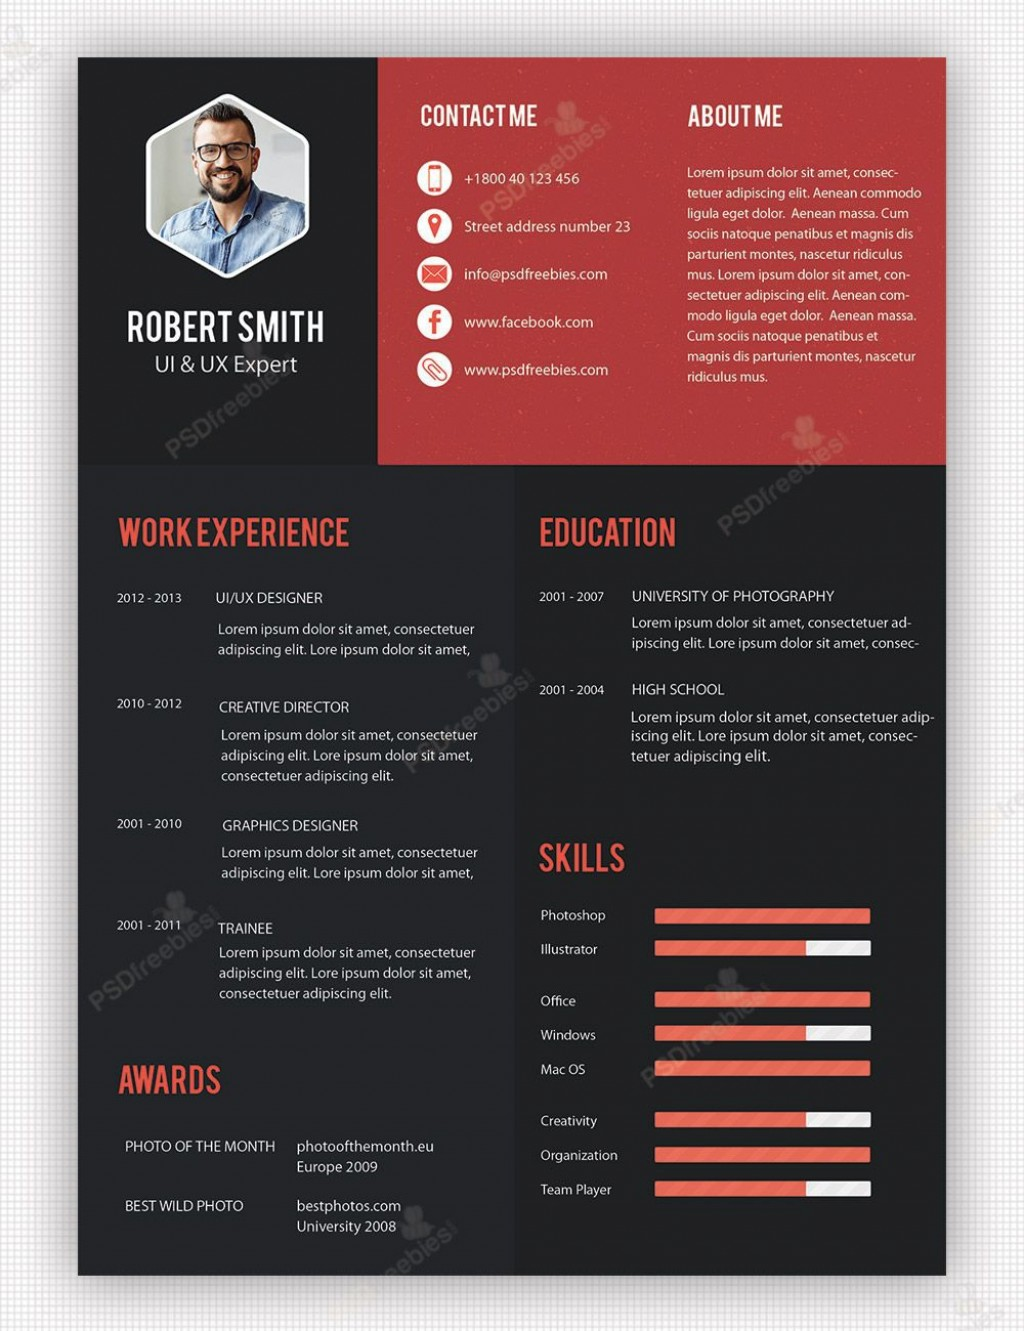 002 Unusual Cv Design Photoshop Template Free High Def  Creative Resume Psd DownloadLarge